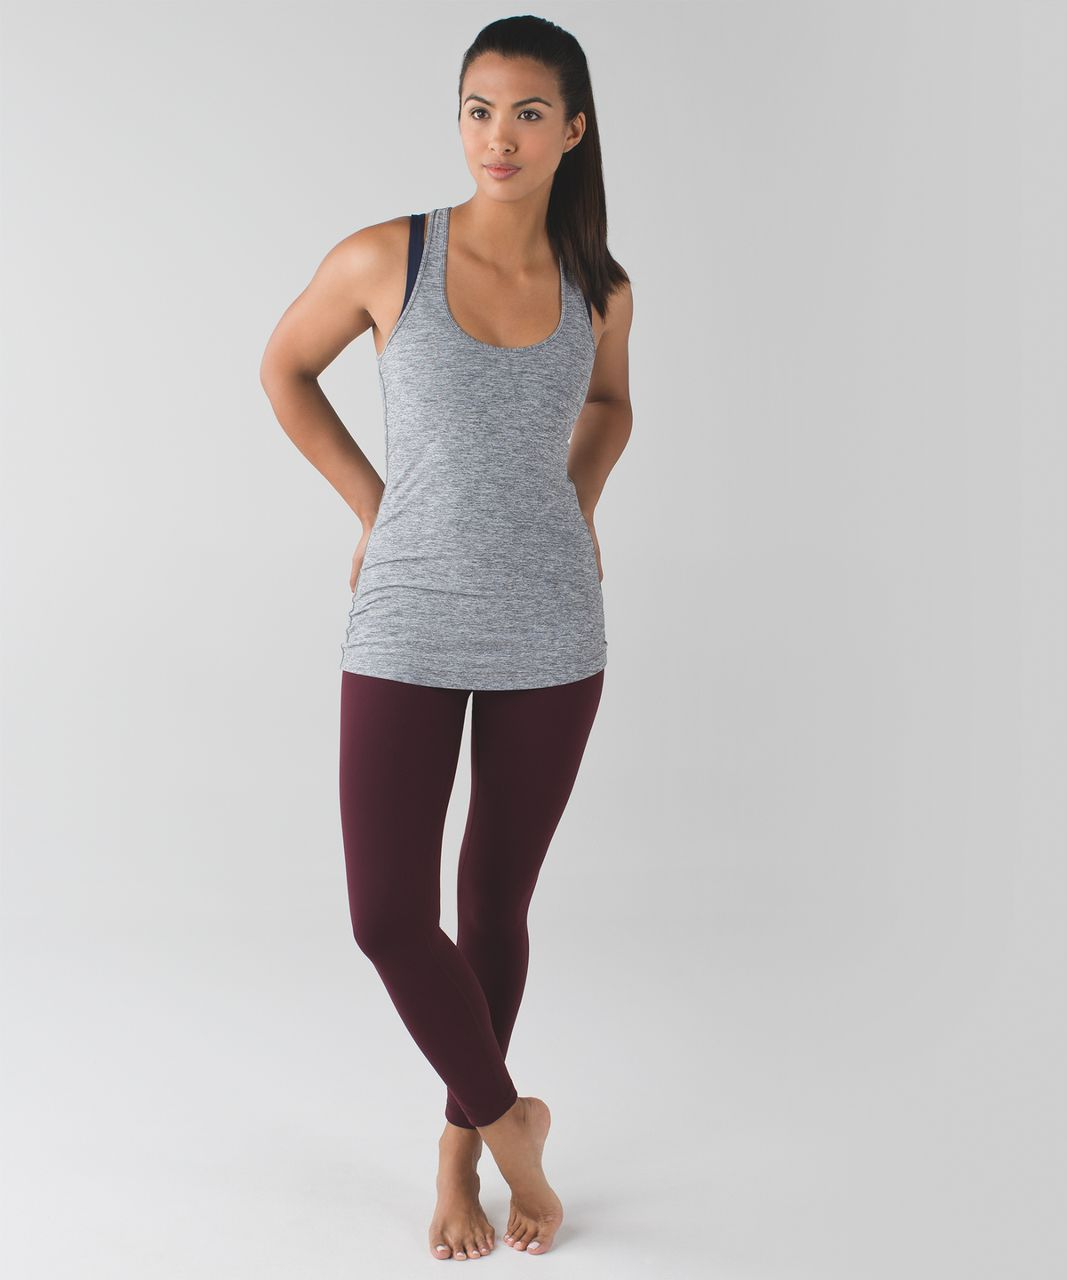 Lululemon High Times Pant *Full-On Luon - Bordeaux Drama